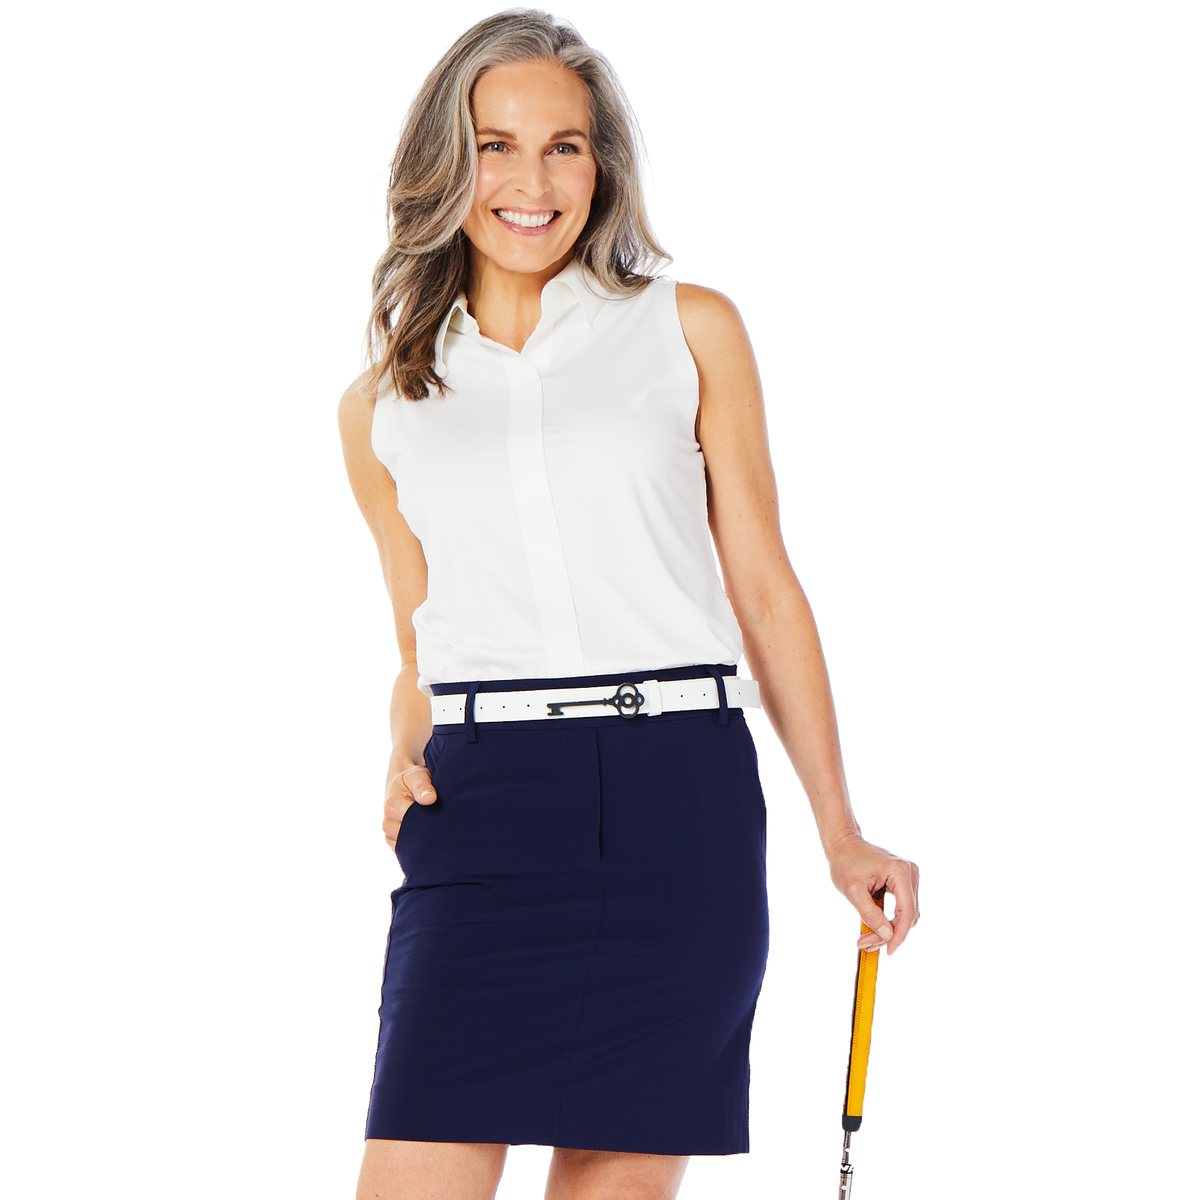 f8a1ca79e541d Ladies Golf Sleeveless Polo Shirts – EDGE Engineering and Consulting ...